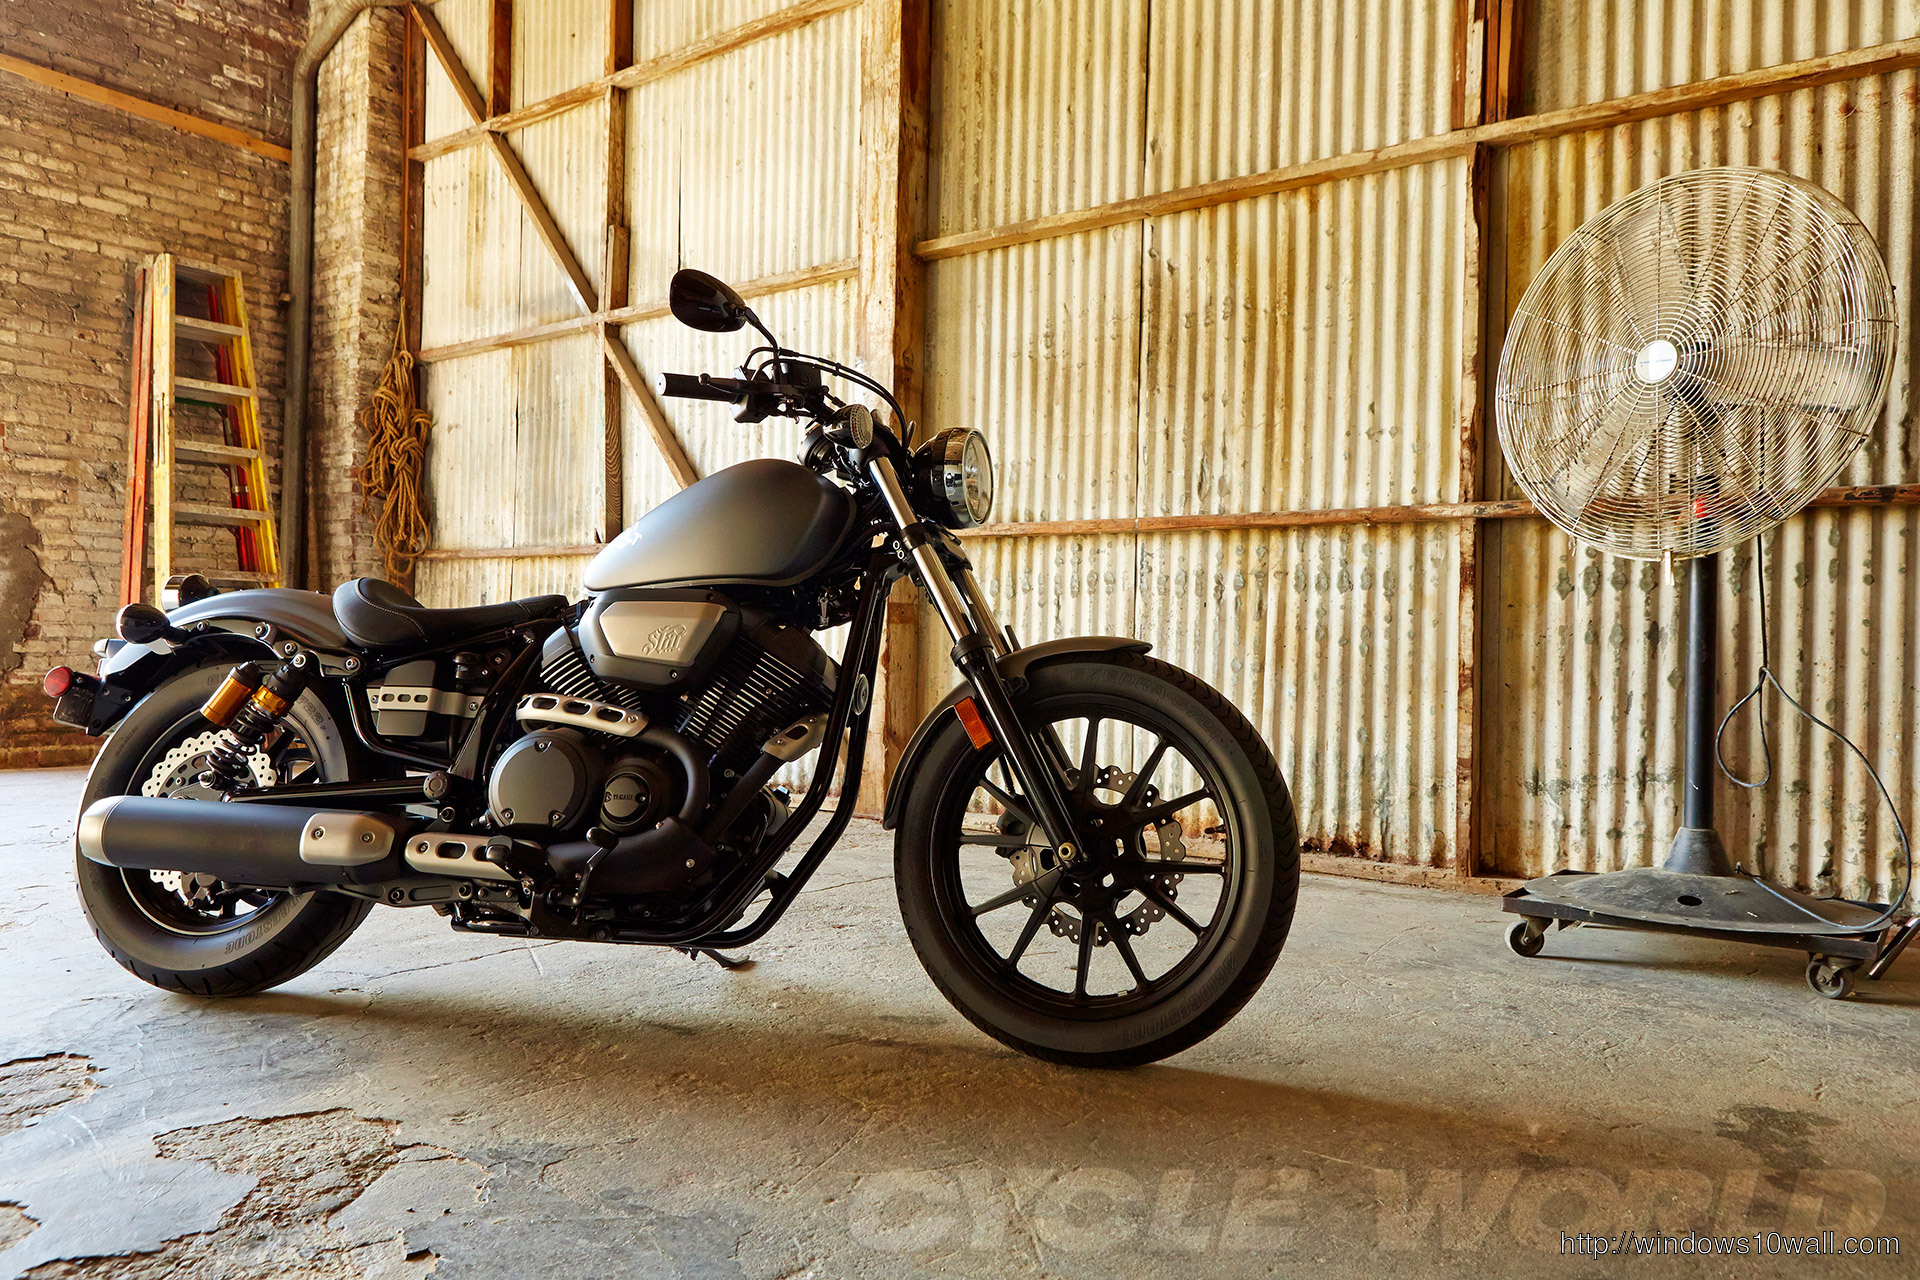 2014 Yamaha Star Bolt Grey free wallpaper